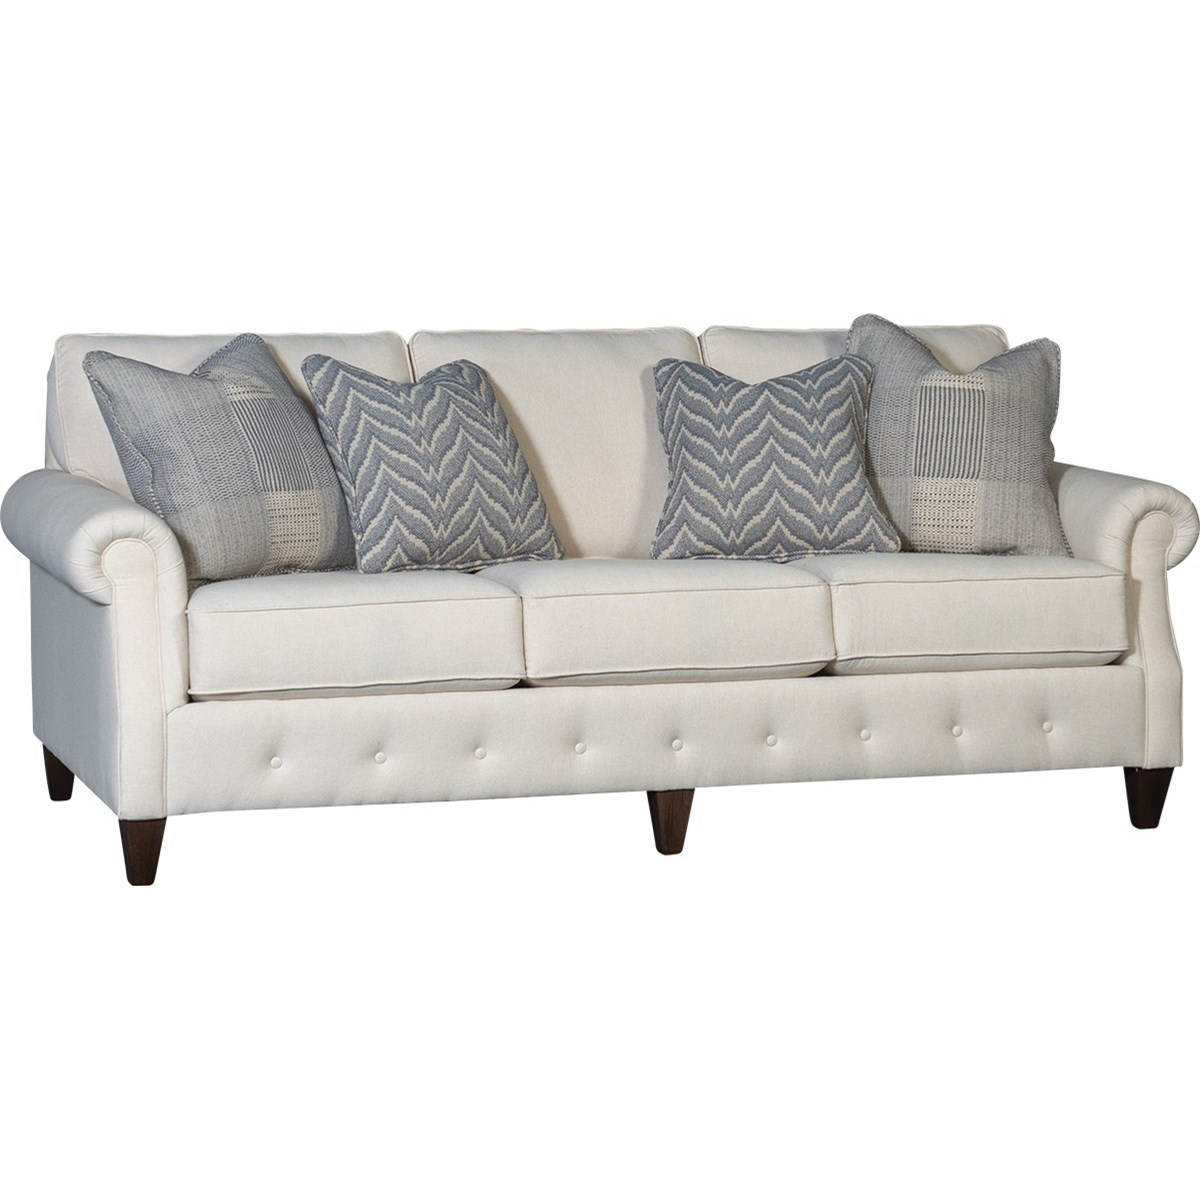 4040 Transitional Sofa by Mayo at Story & Lee Furniture